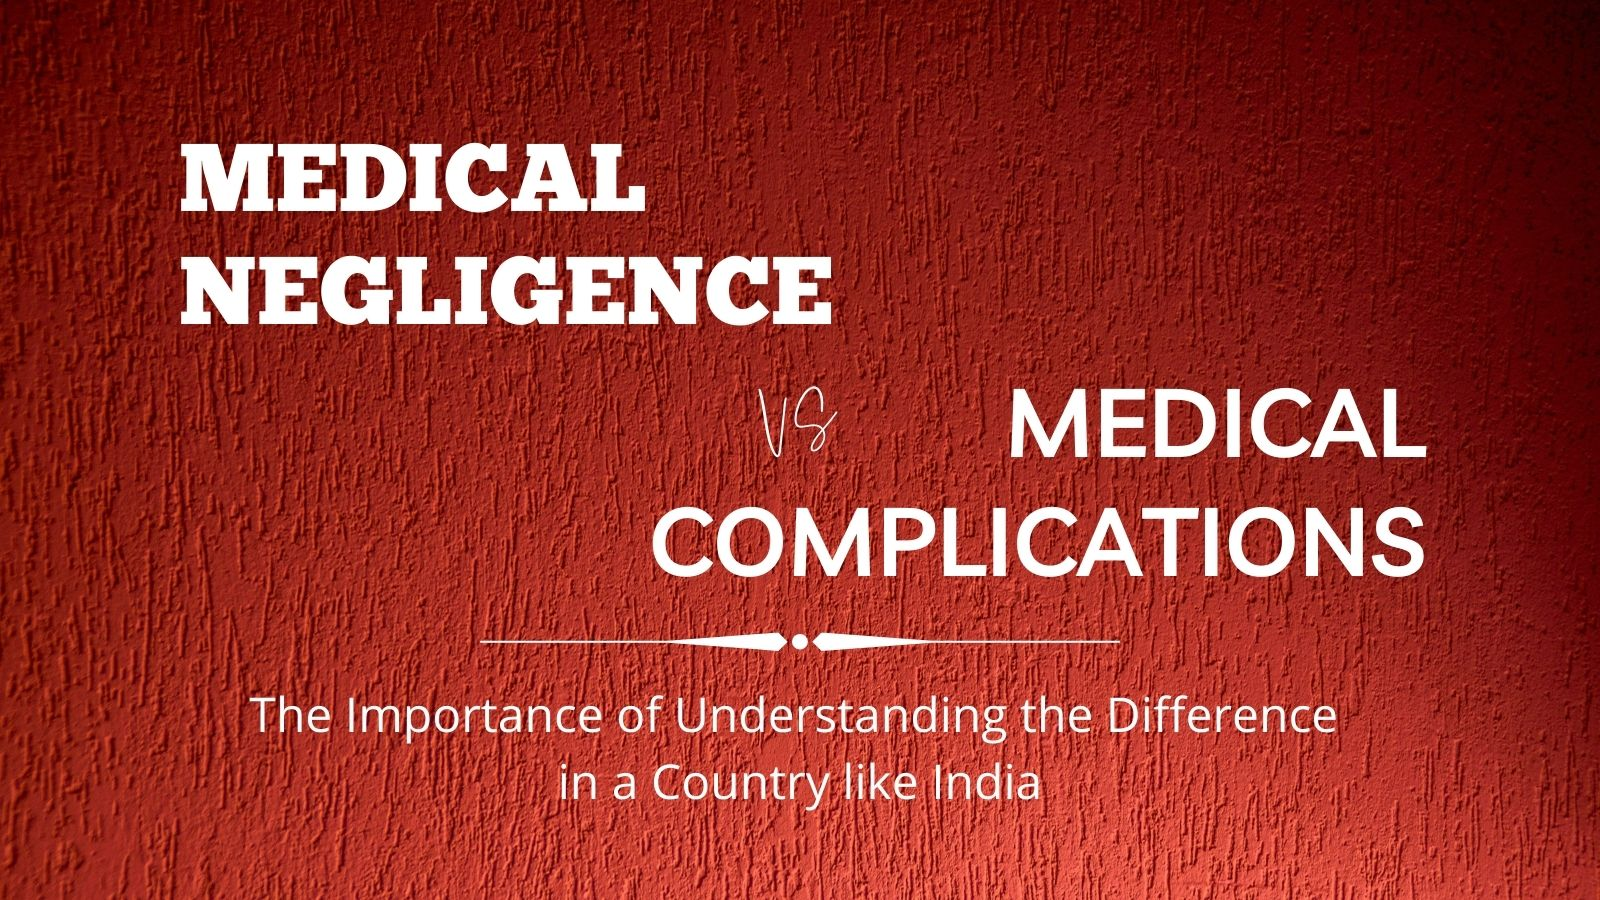 Medical Negligence vs Known Complications: Understand the Difference